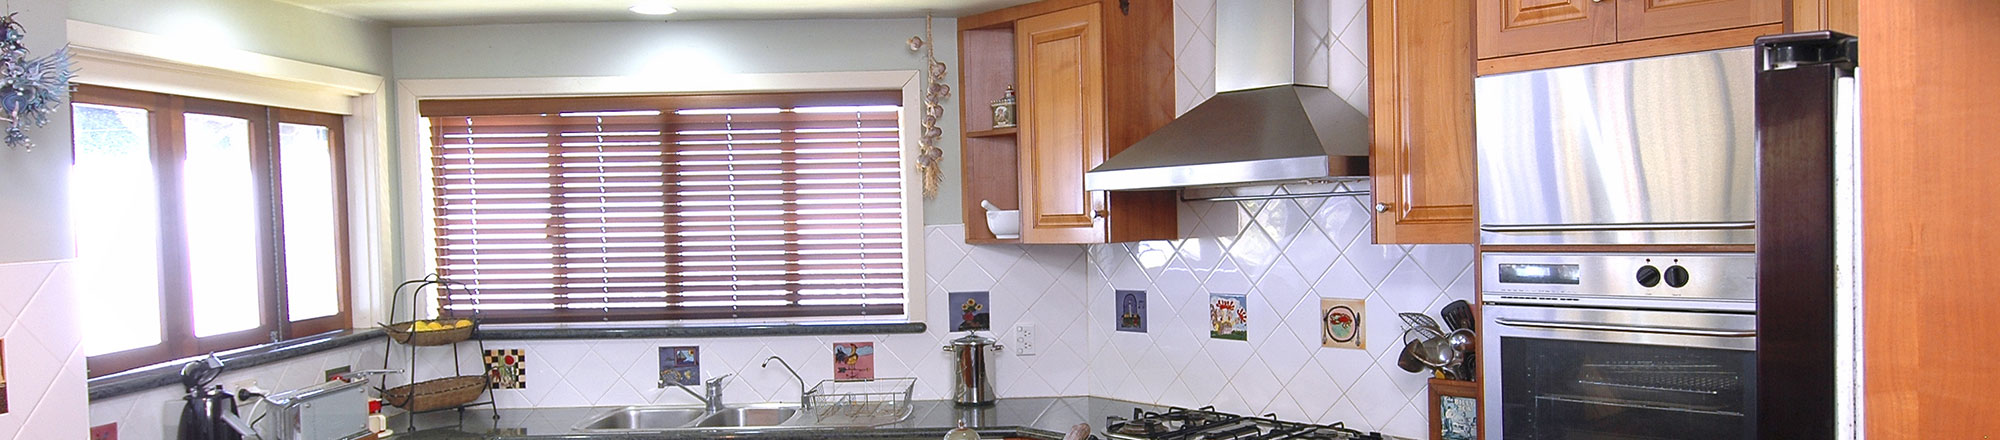 Kitchen with window shutters in Ocala, FL.